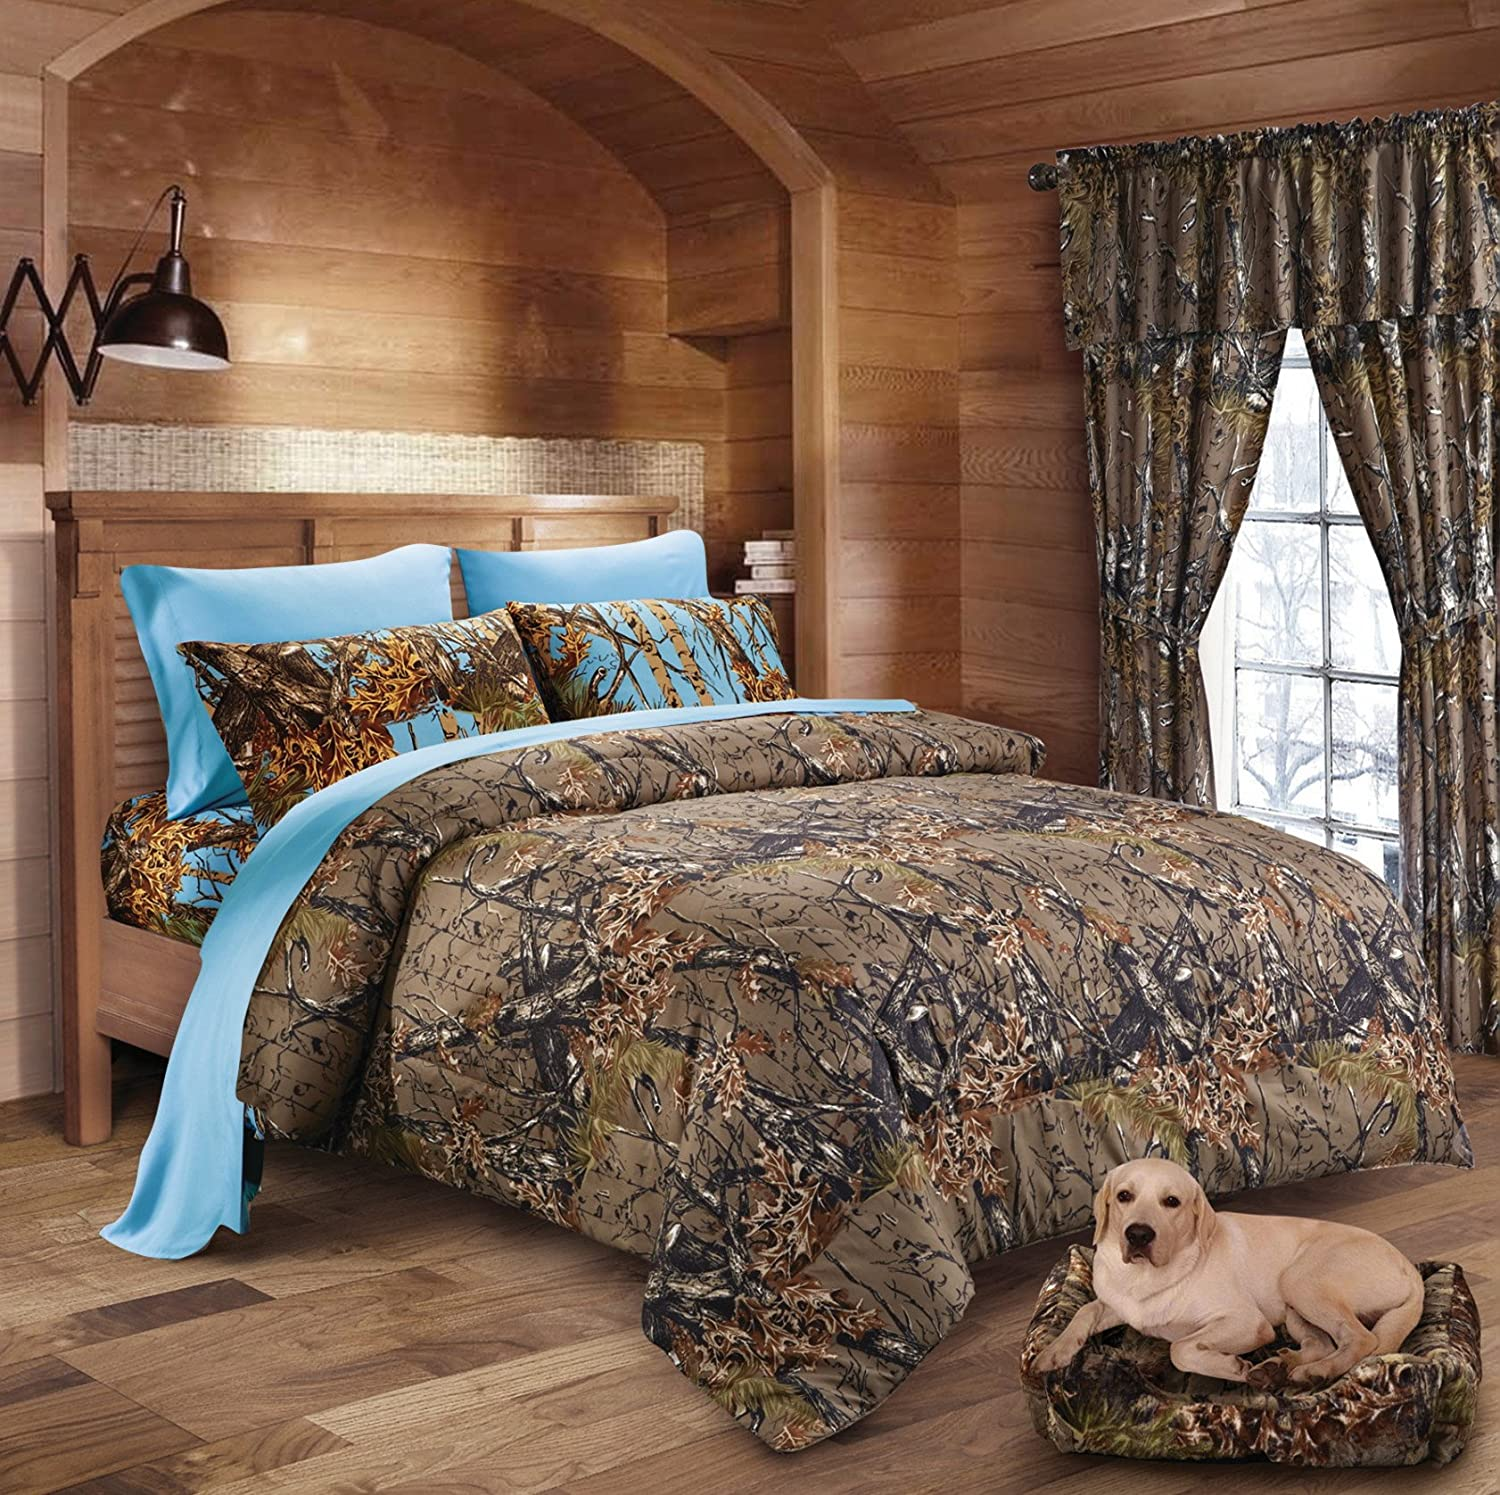 20 Lakes Woodland Hunter Camo Comforter, Sheet, & Pillowcase Set